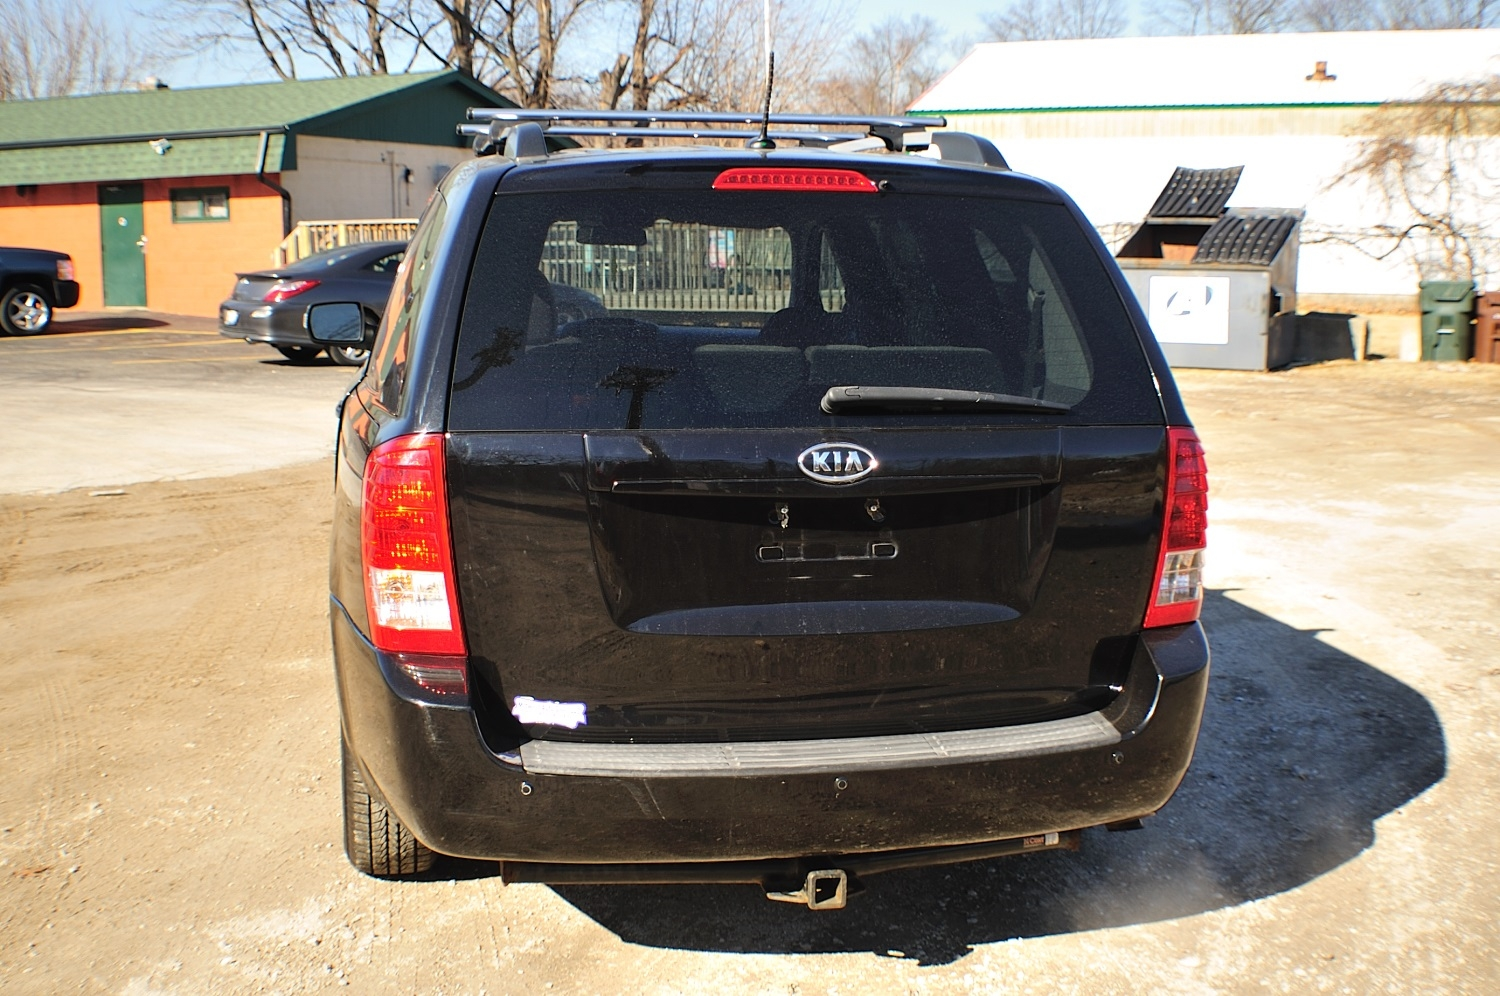 2011 Kia Sedona Black Family Mini Van Sale Buffalo Grove Deerfield Fox Lake Antioch